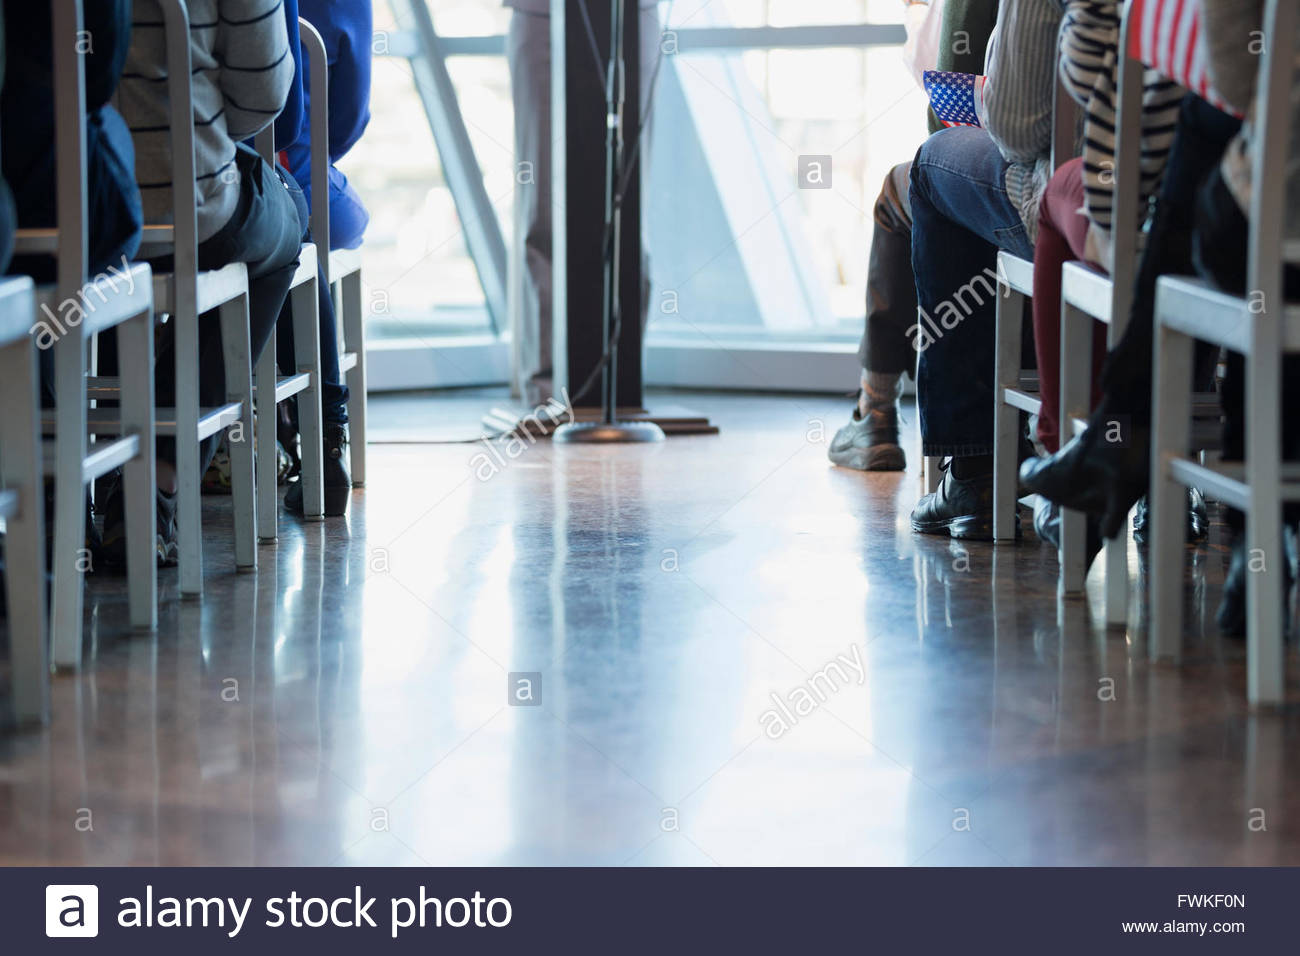 Legs of politician and audience at political rally - Stock Image